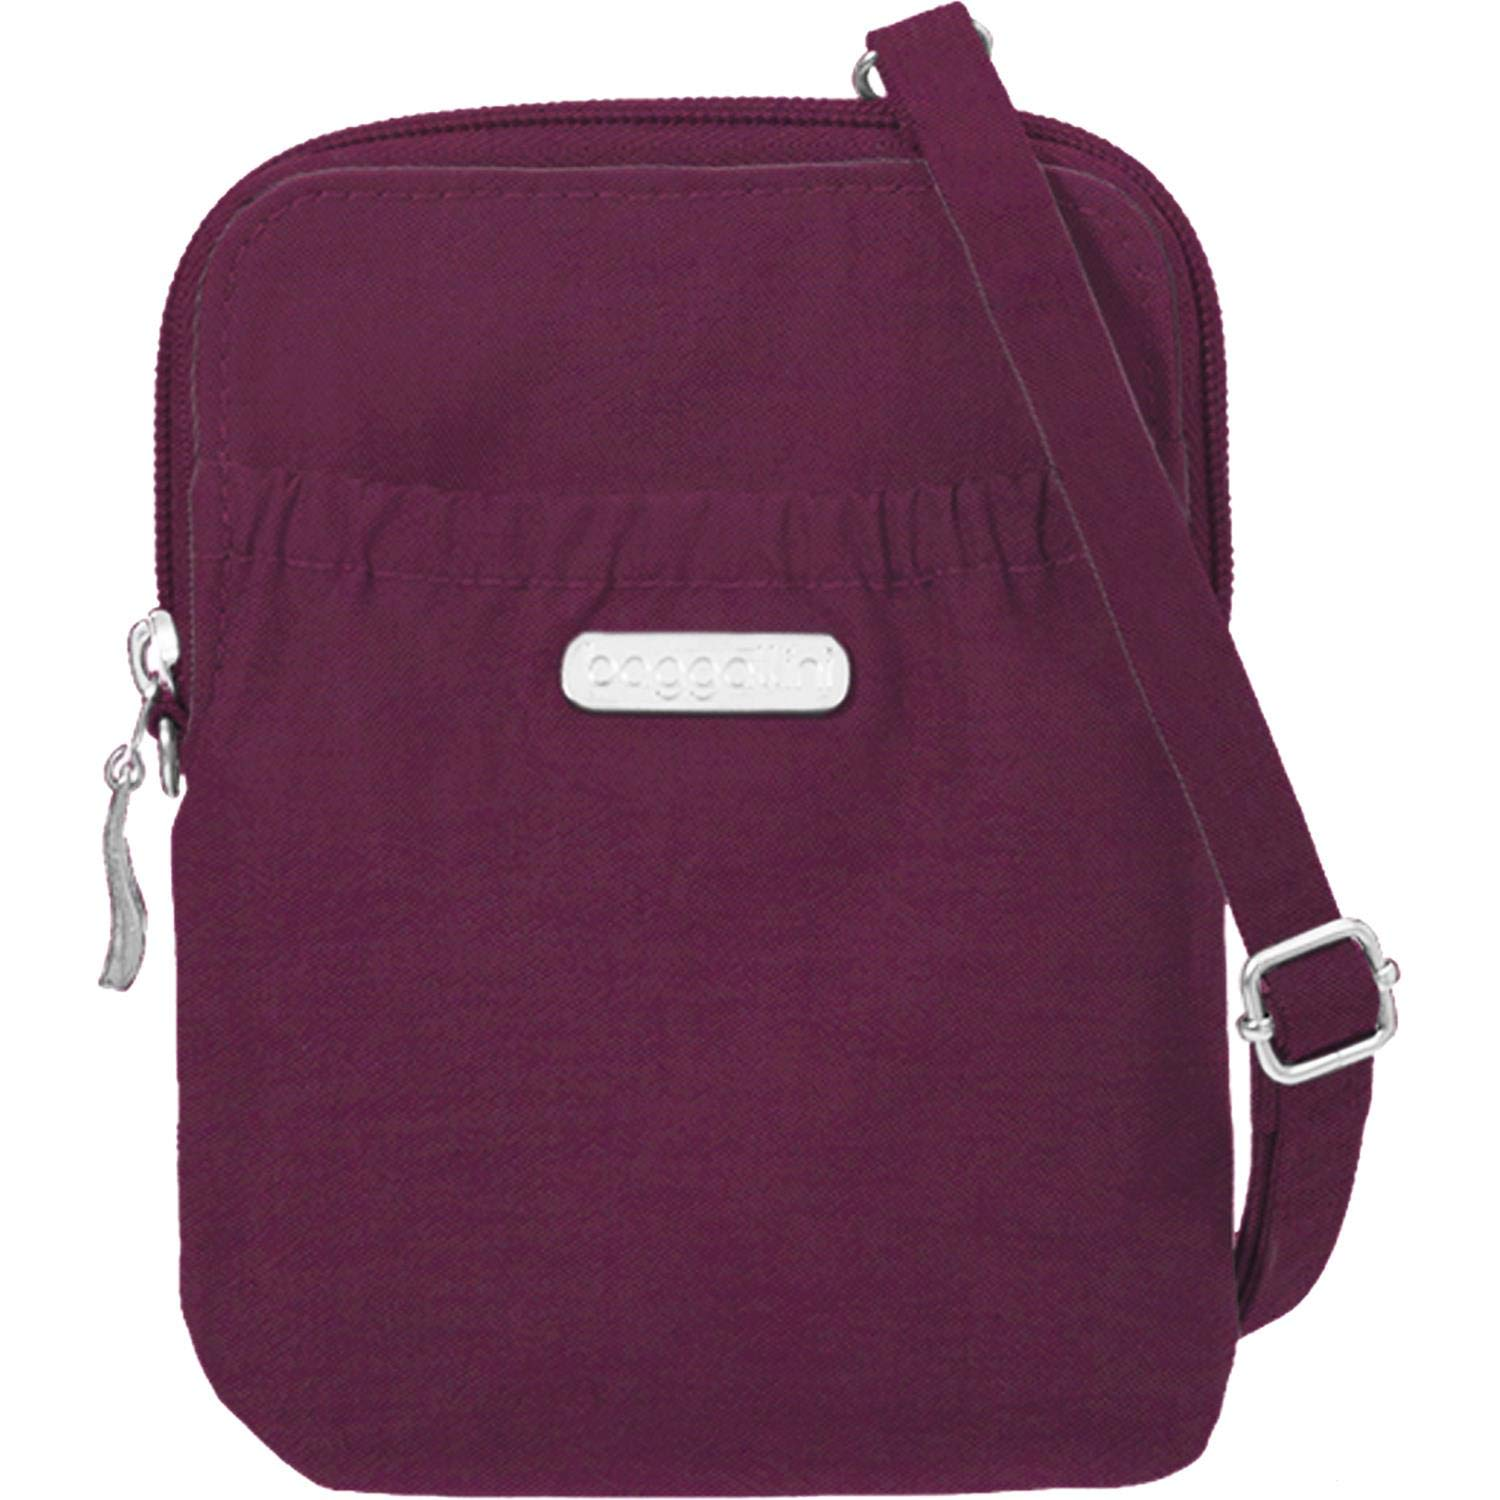 Baggallini Rfid Bryant Pouch, Eggplant, One Size